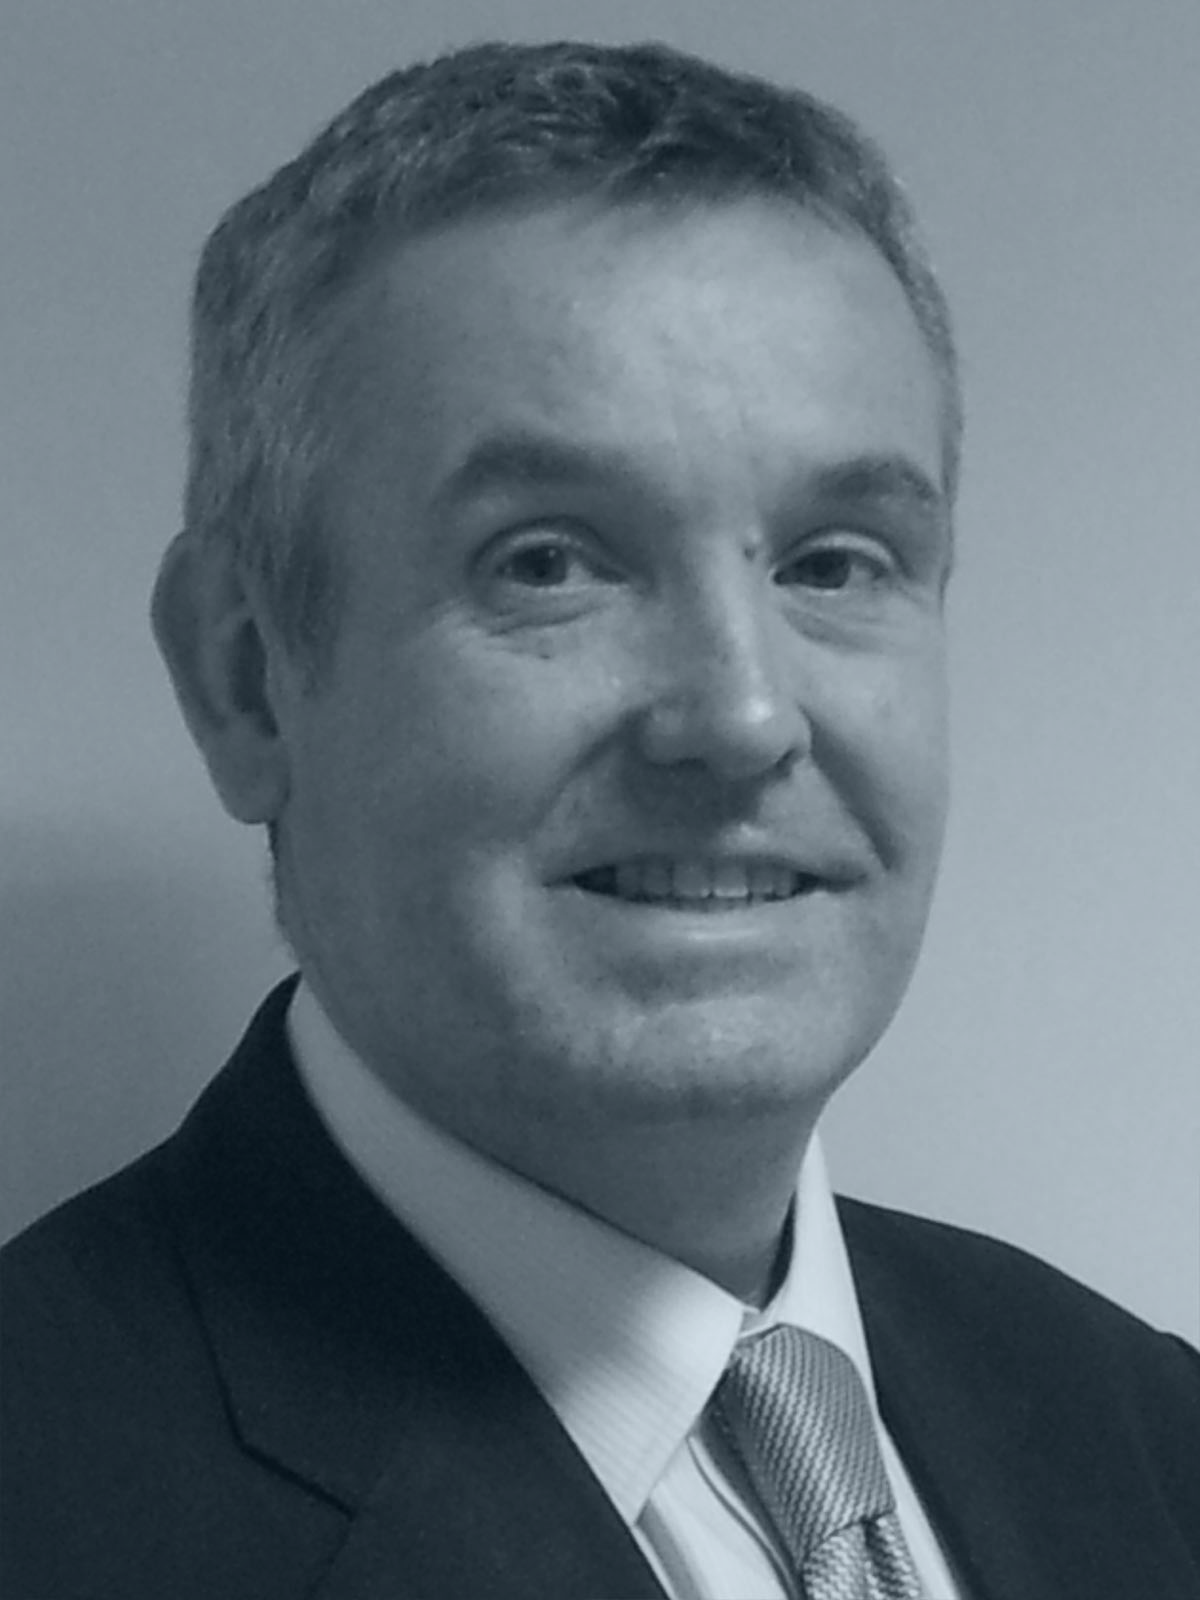 Steve Bloomfield - Director, XL Independent Financial Advice